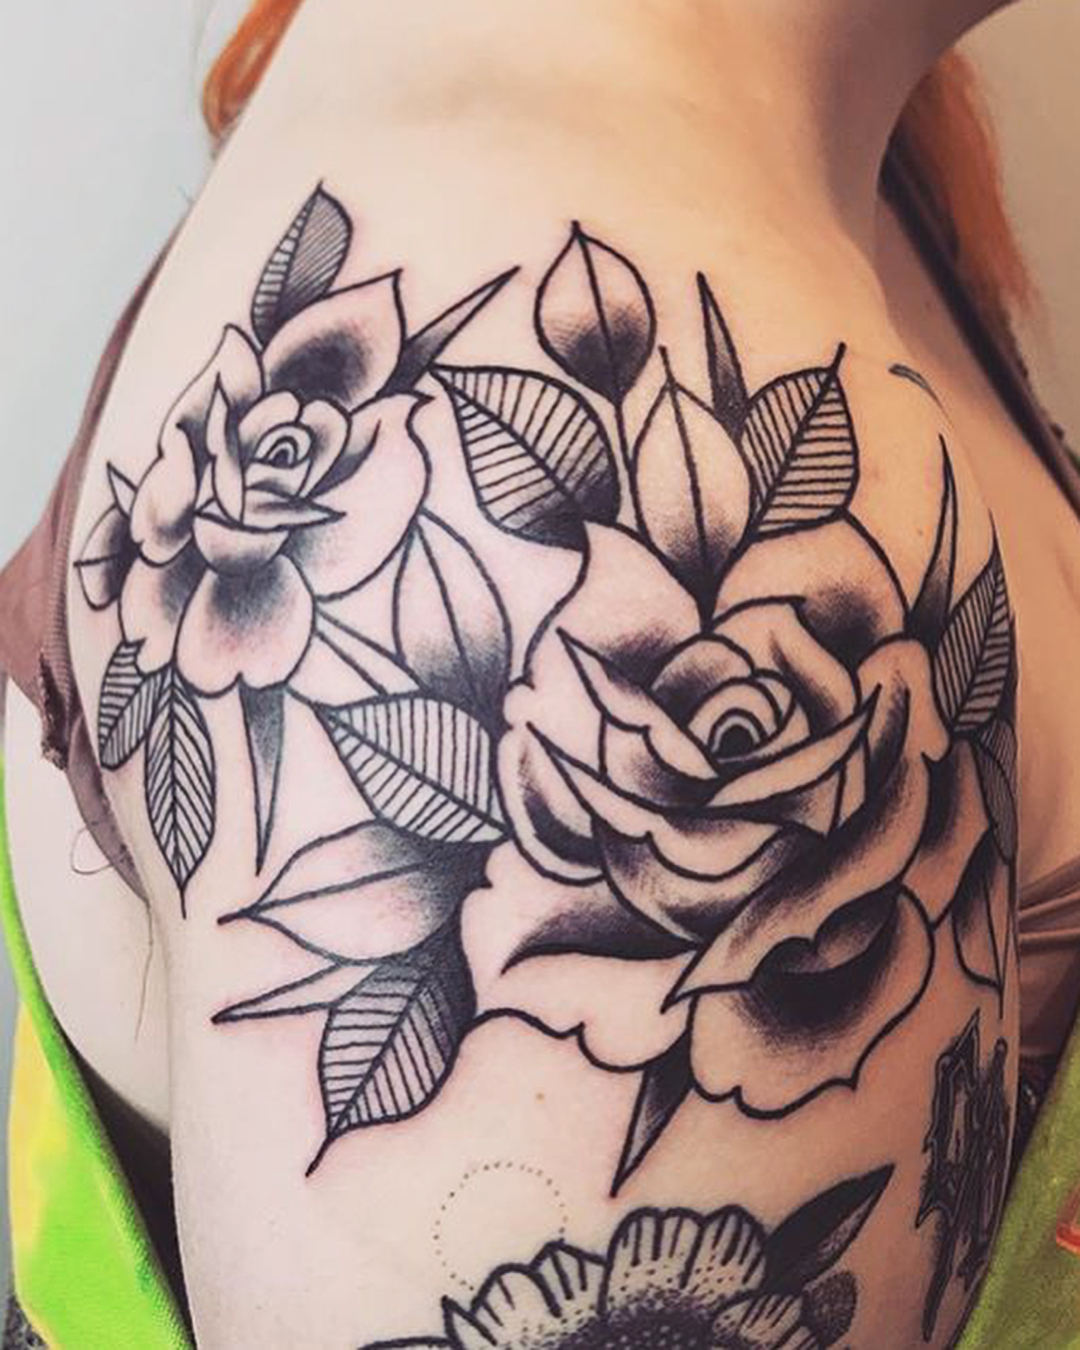 Detailed rose shoulder tattoo